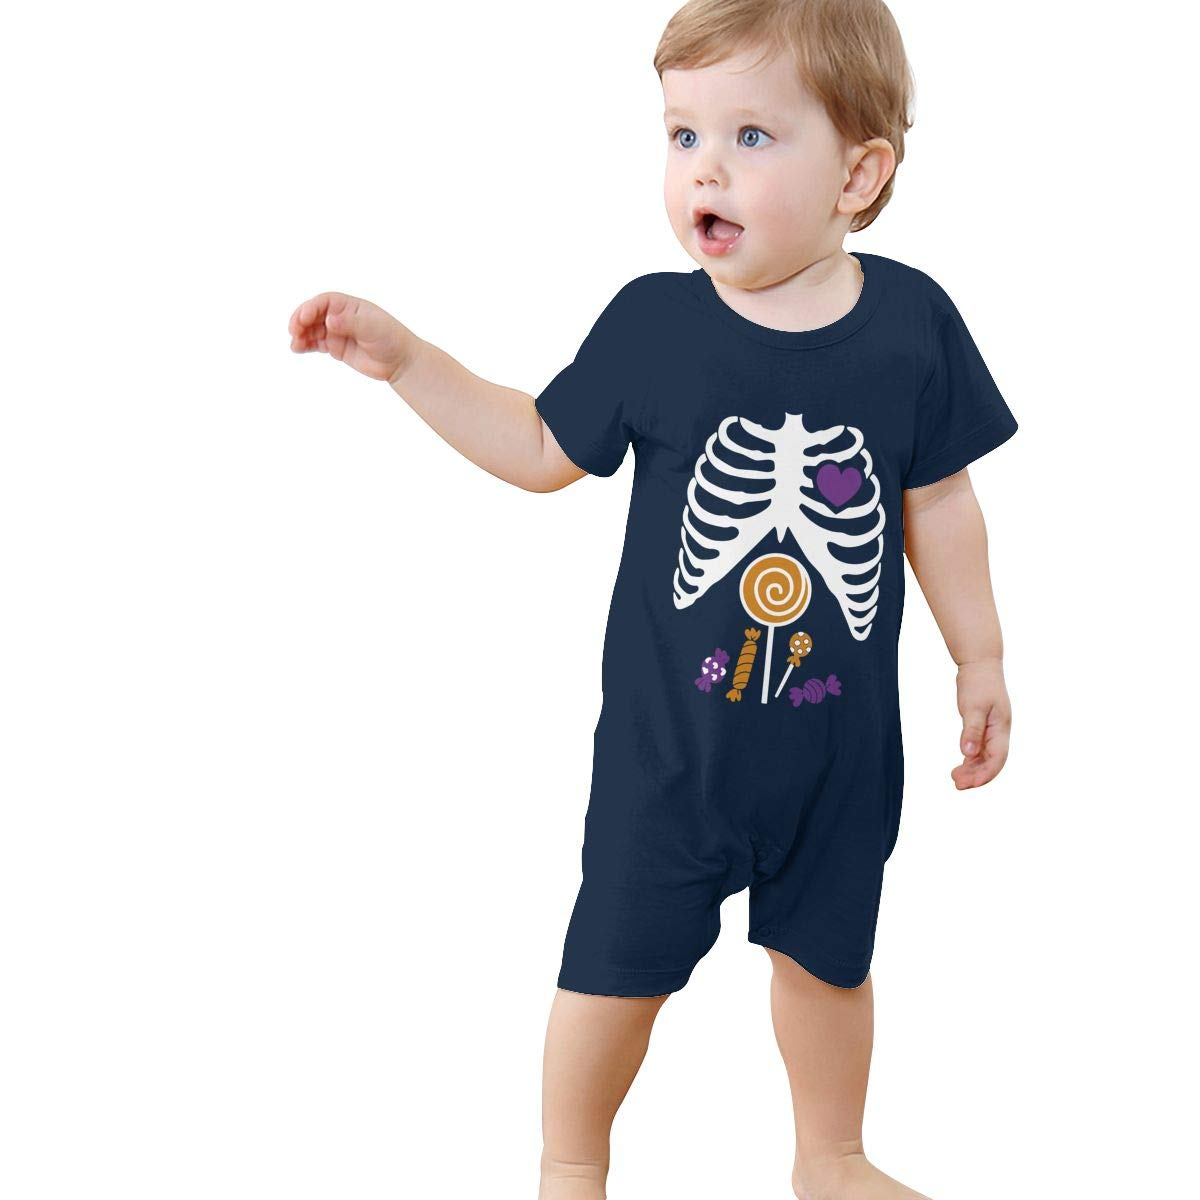 Just Born Baby Boys Girls Bodysuits Skeleton Candy Rib-cage X-Ray Halloween Funny Cotton Short Sleeve Romper Suit